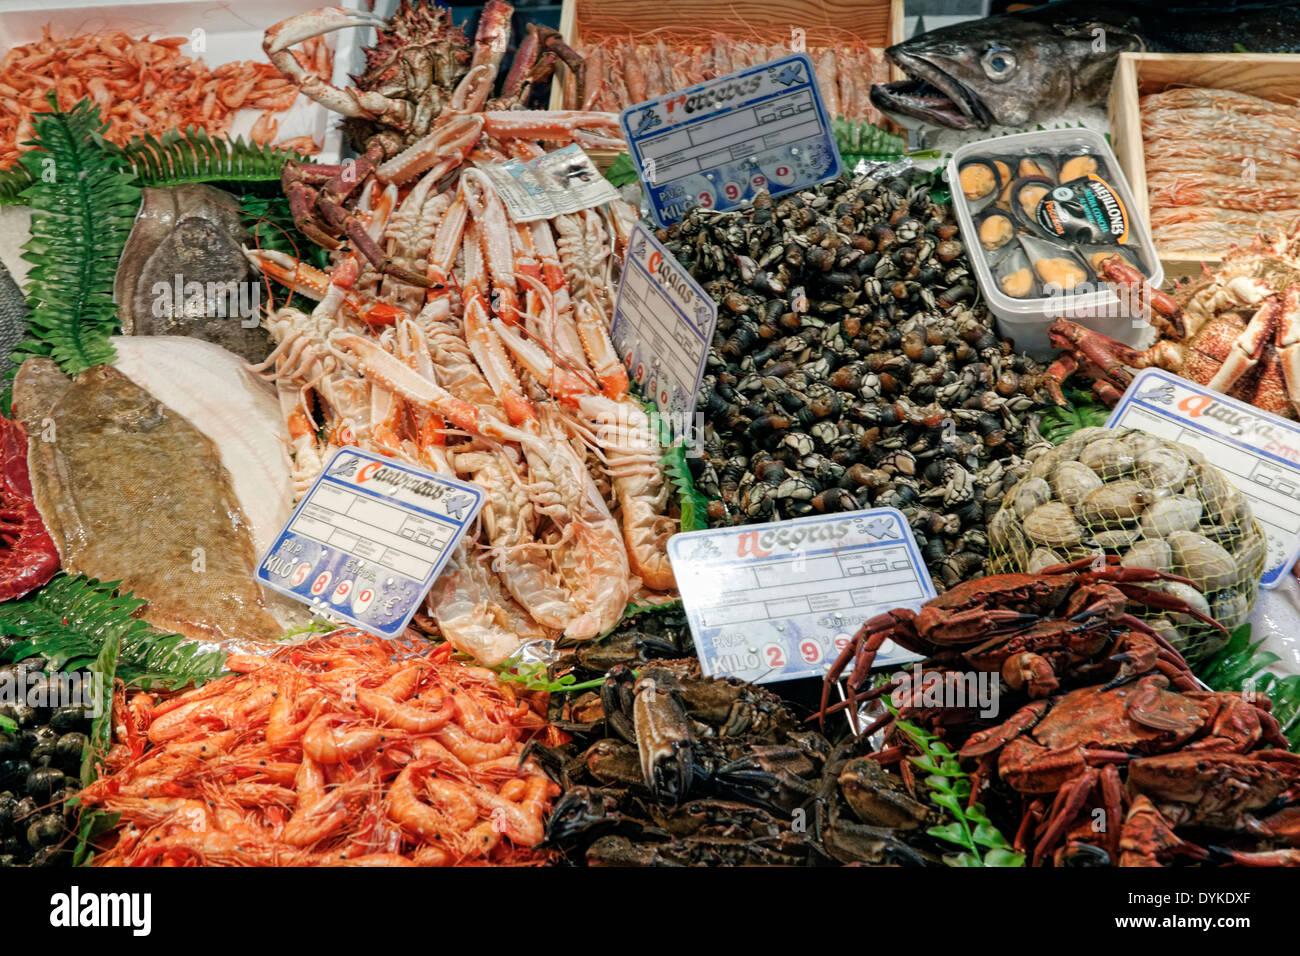 Fresh fish and seafood for sale at mercado central a for Fish and seafood